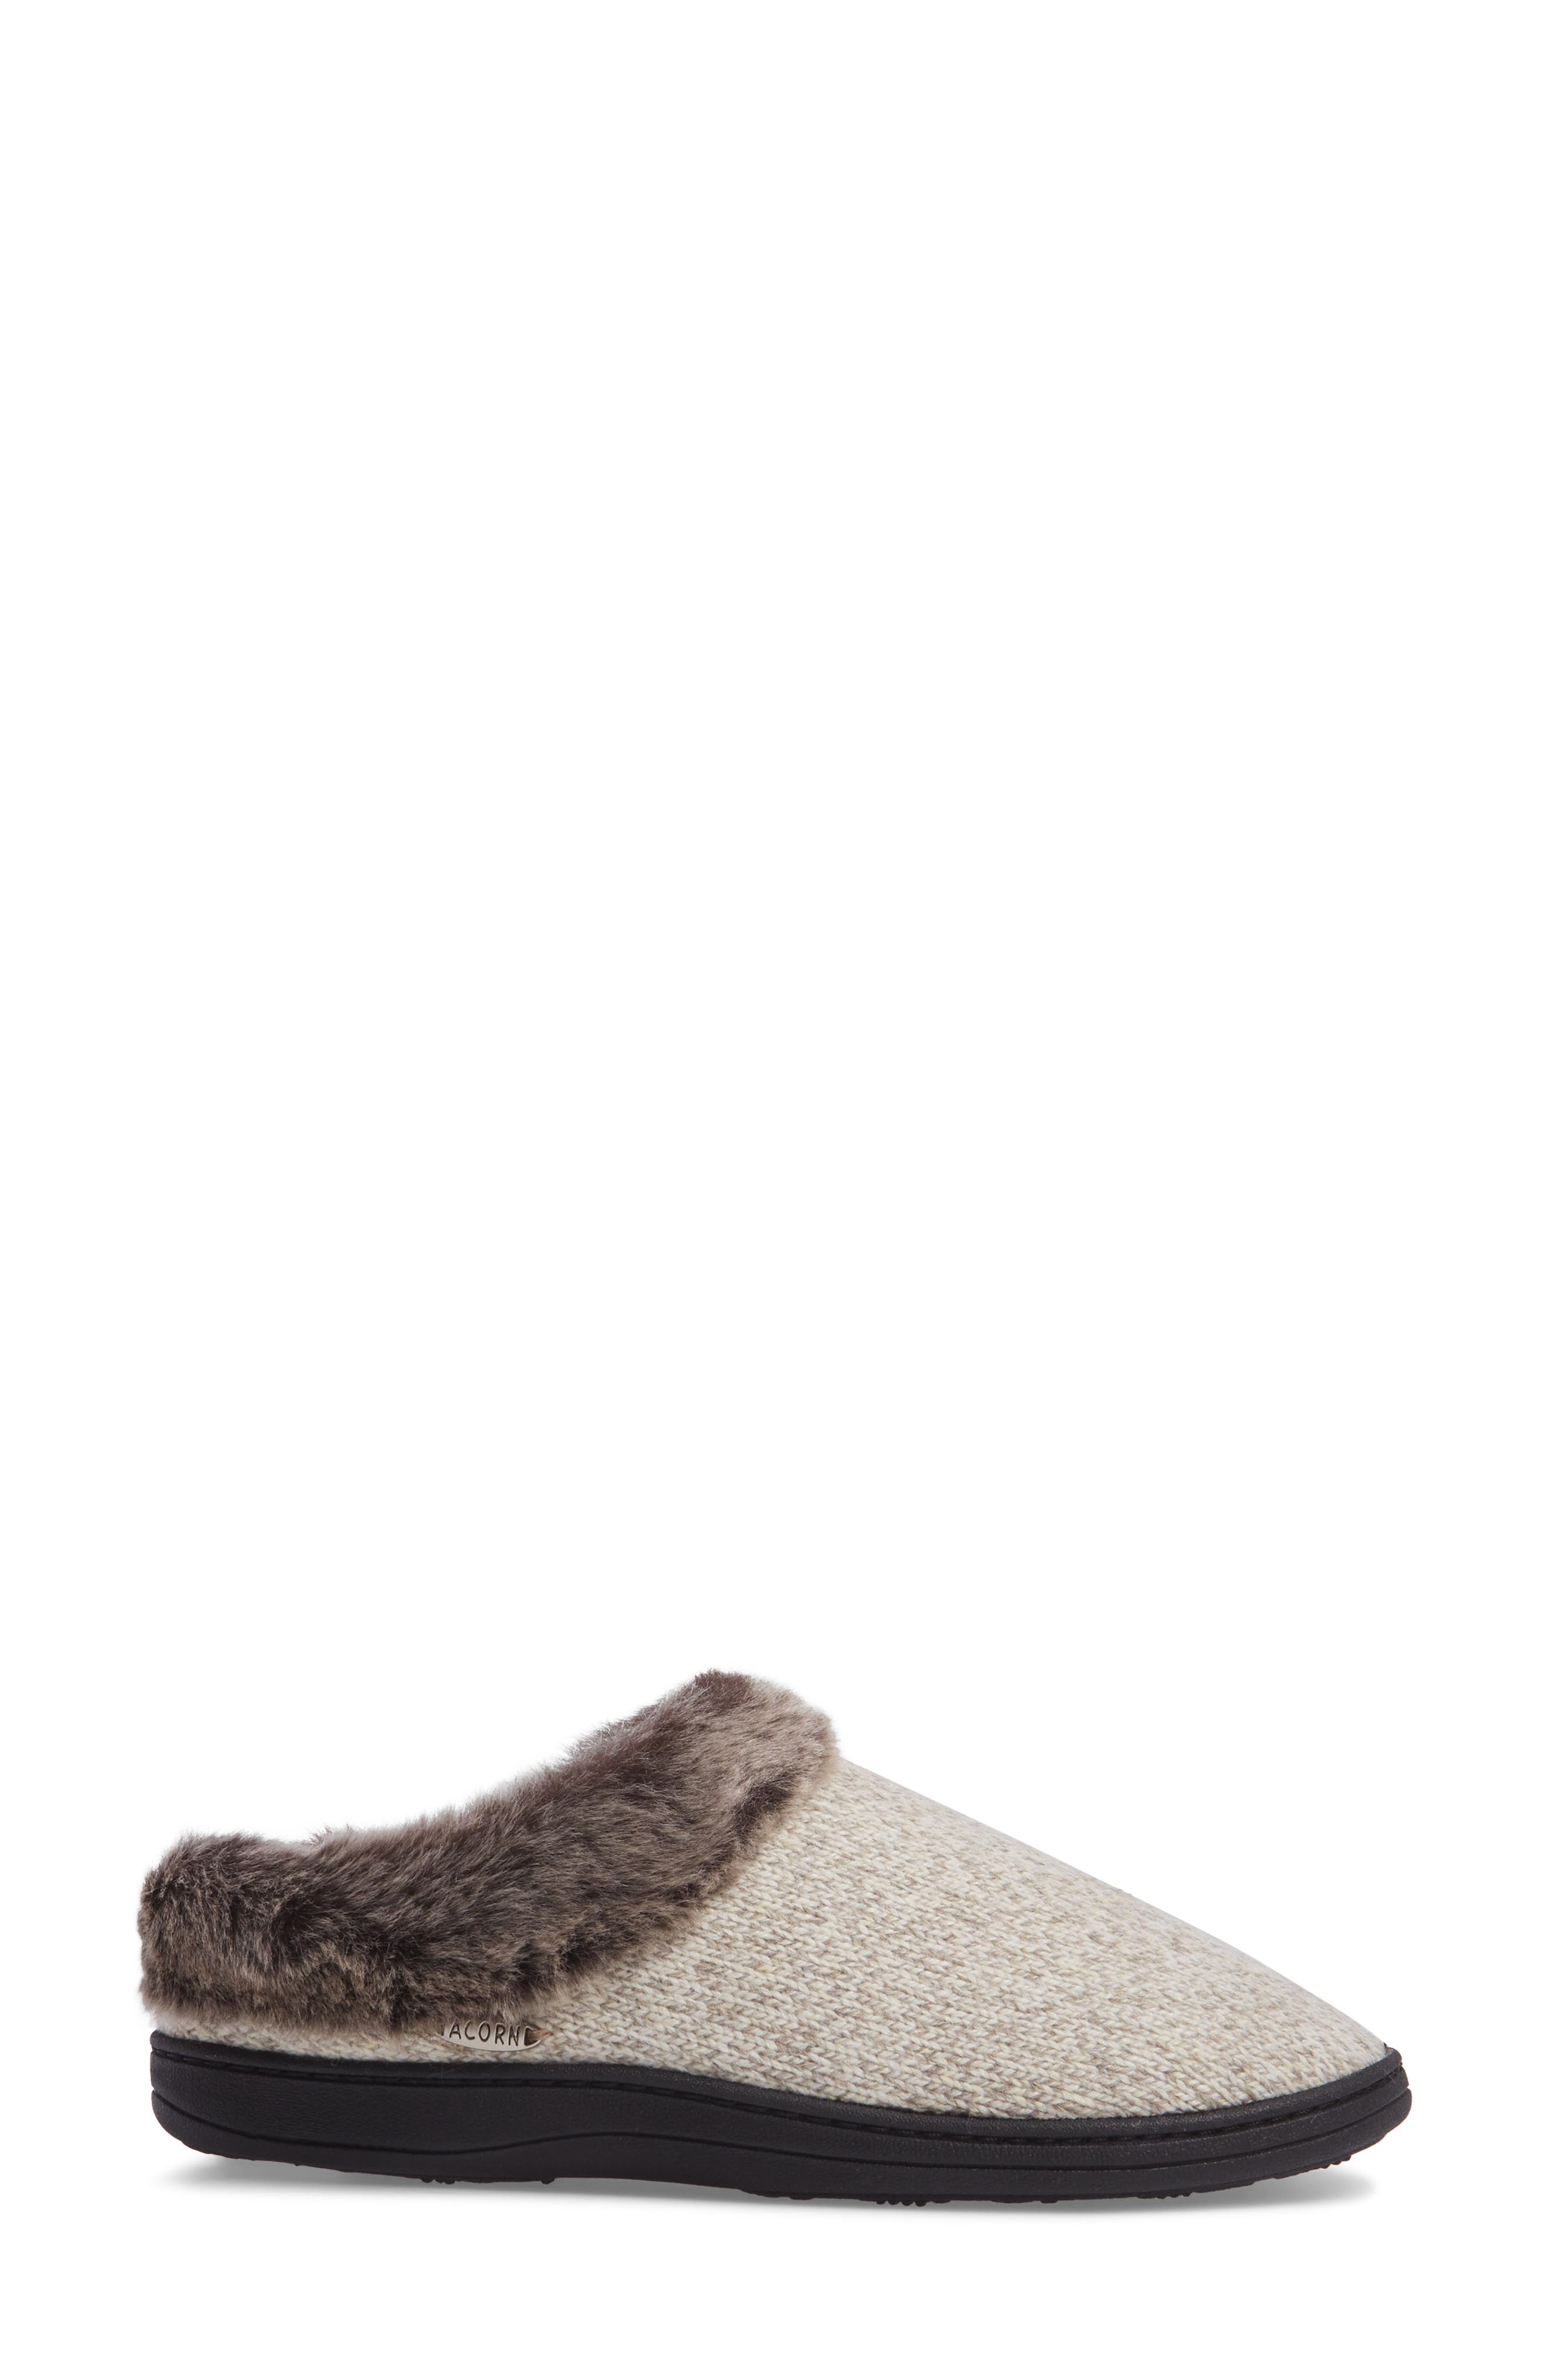 Chinchilla Faux Fur Slipper,                             Alternate thumbnail 3, color,                             CHARCOAL HEATHER